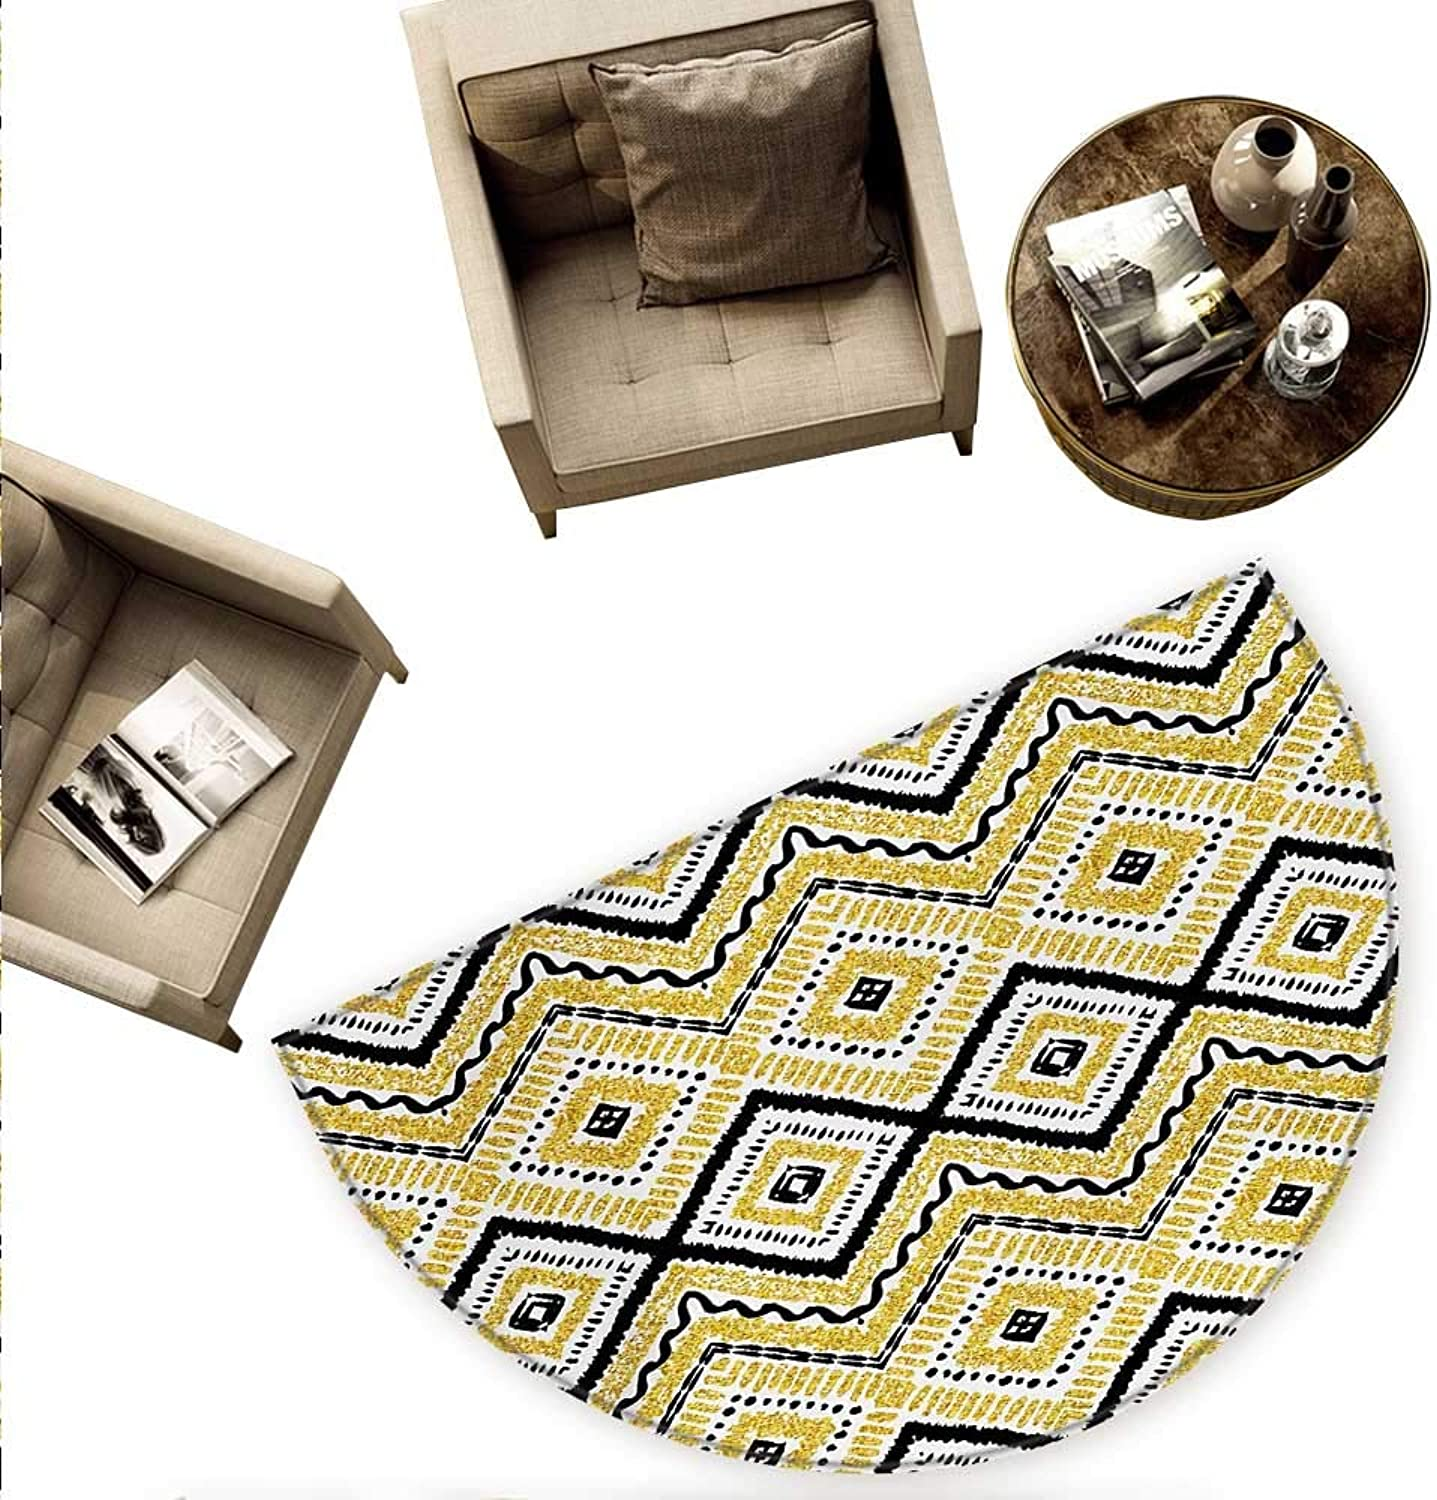 Ethnic Semicircle Doormat Native Tribal Motif with Rhombus Pattern Dots and Chevron Waves Print Halfmoon doormats H 70.8  xD 106.3  Yellow Black and White